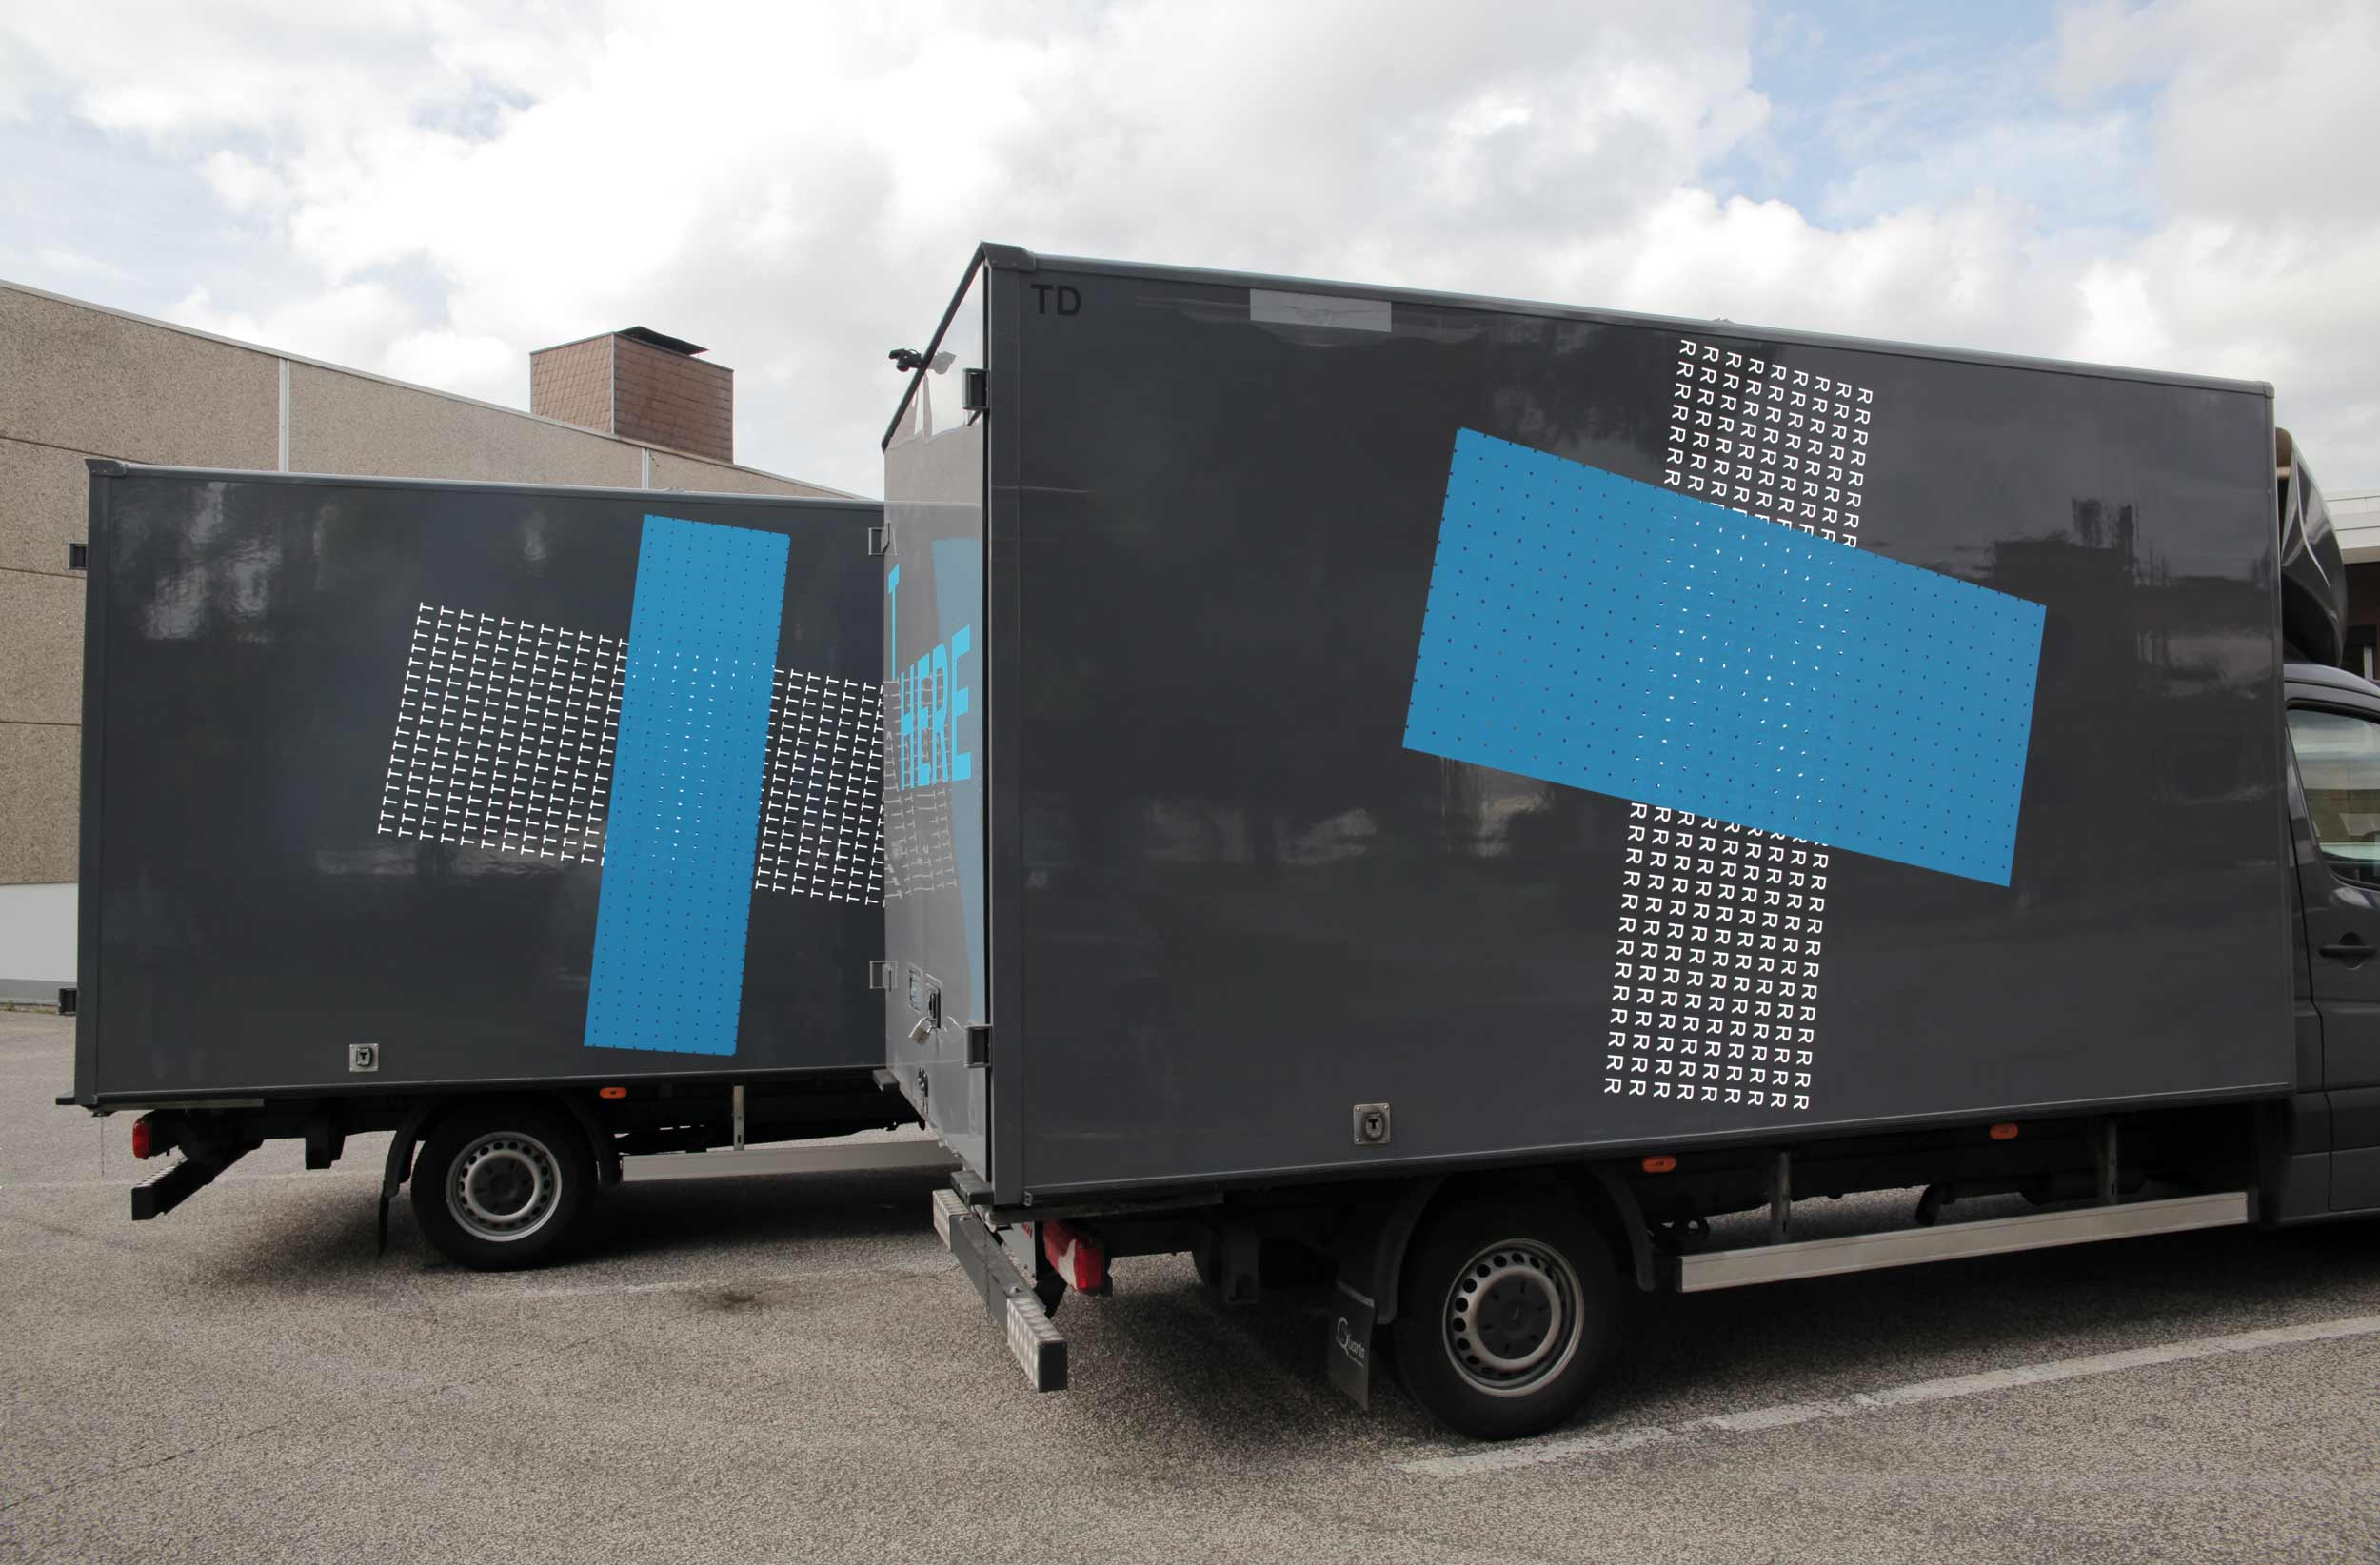 <p>Ein Projekt von Hannah Rath</p>  <p>mit Tandem Kunsttransporte,</p>  <p>2014-15</p>  <p>/</p>  <p>Fünf LKW Der Kunstspedition wurden von Hannah Rath gestaltet.</p>  <p>Zu dem Projekt ist eine Postkartenedition erschienen.</p>  <p>| A project by Hannah Rath with Tandem Kunsttransporte.</p>  <p>Five small trucks, belonging to this art-shipping company, were designed by Hannah Rath.</p>  <p>An edition of postcards was published in the course of the projekt.</p>  <p> </p>